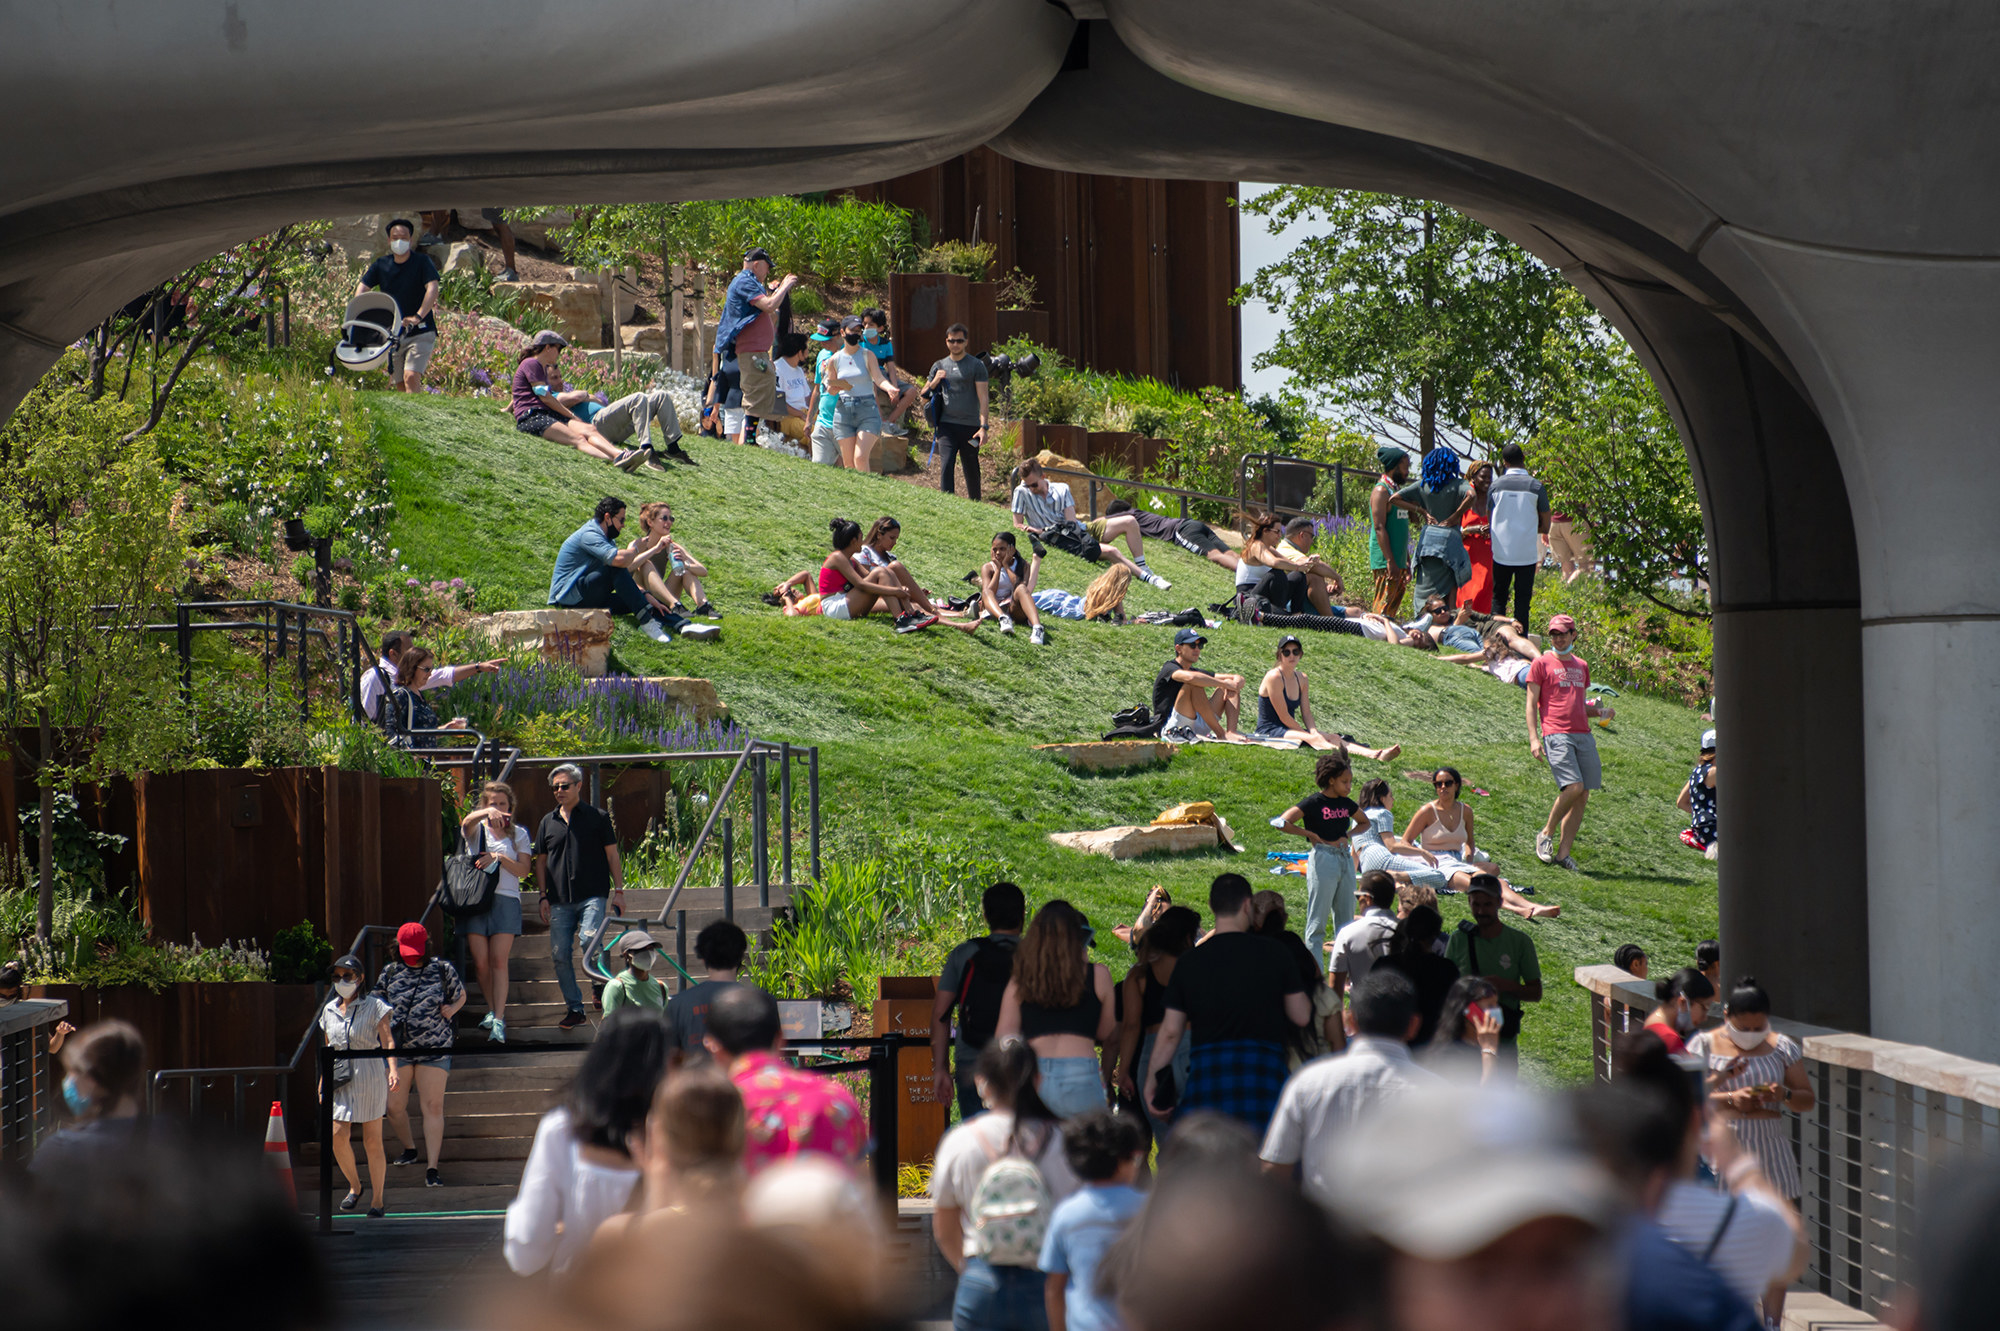 A view of people lounging on the grass and walking under an overpass